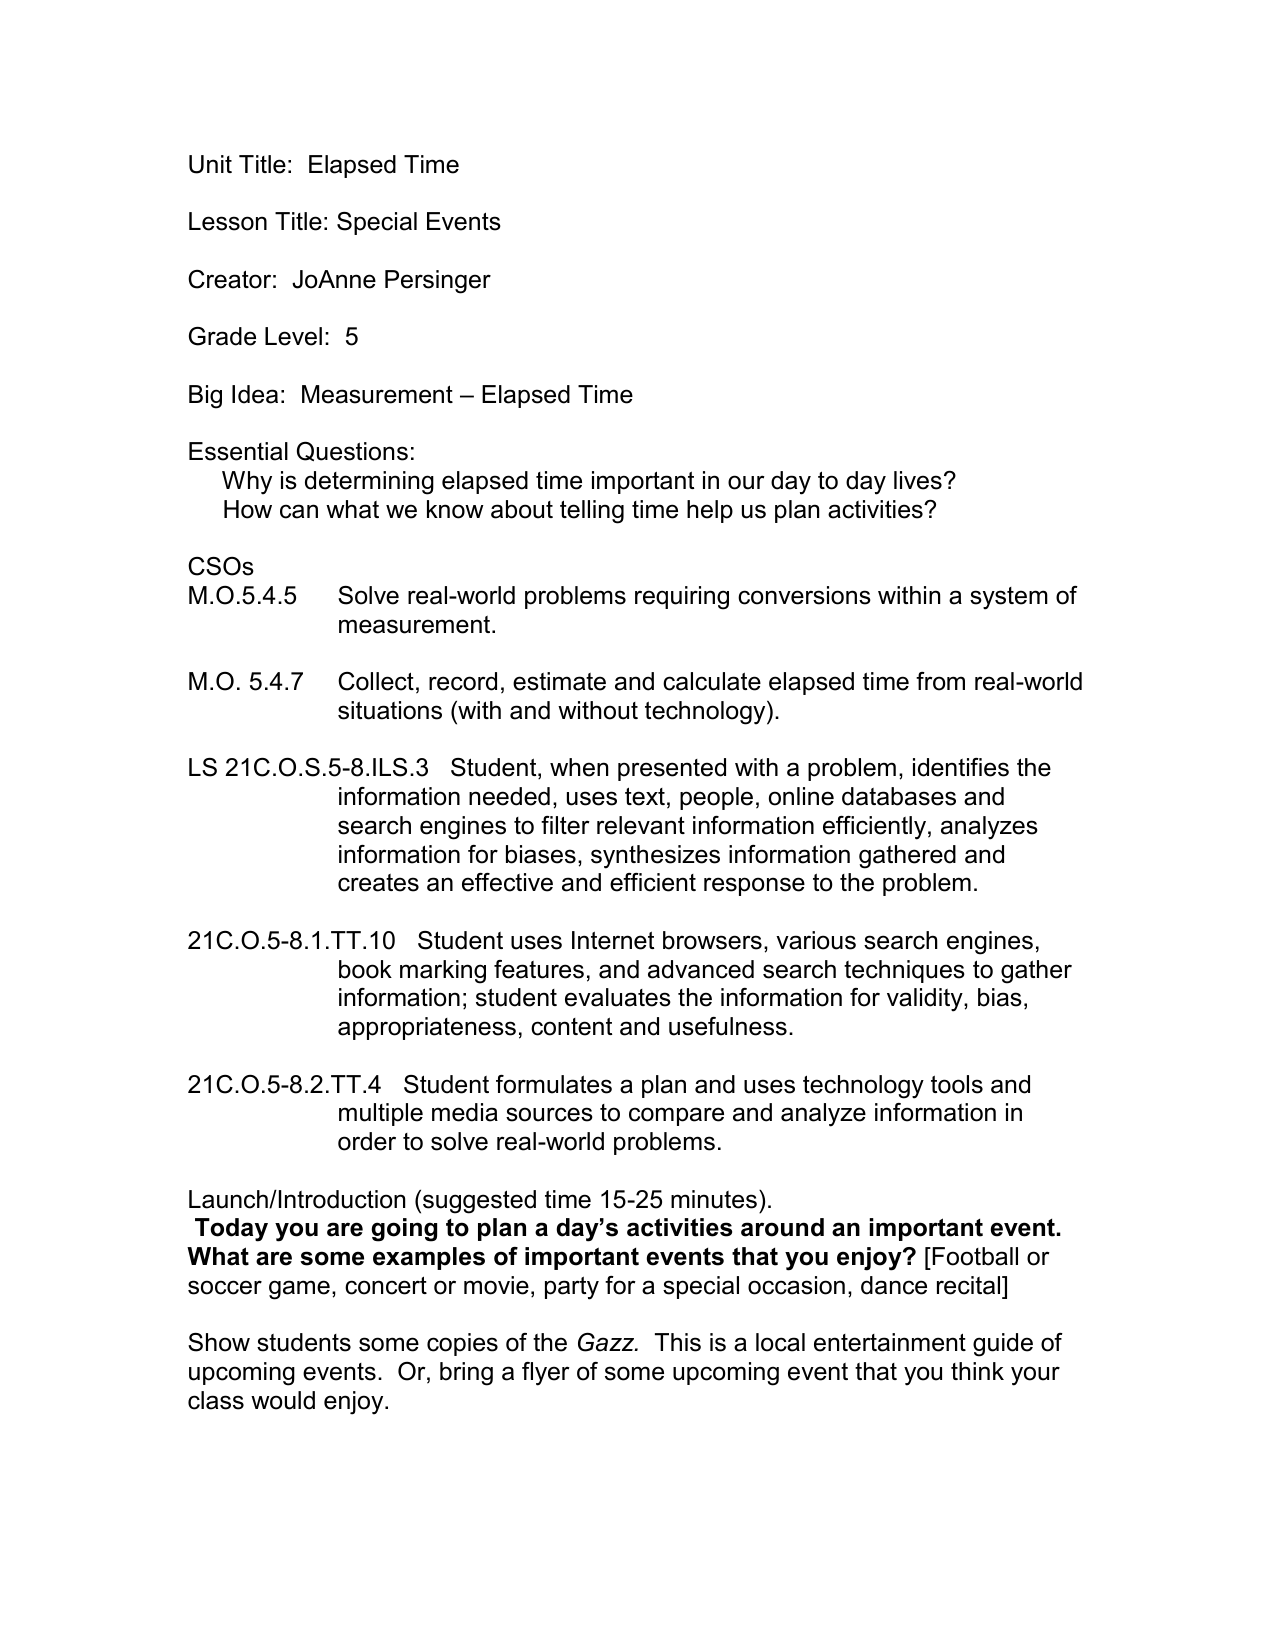 Unit Title: Elapsed Time Lesson Title: Special Events